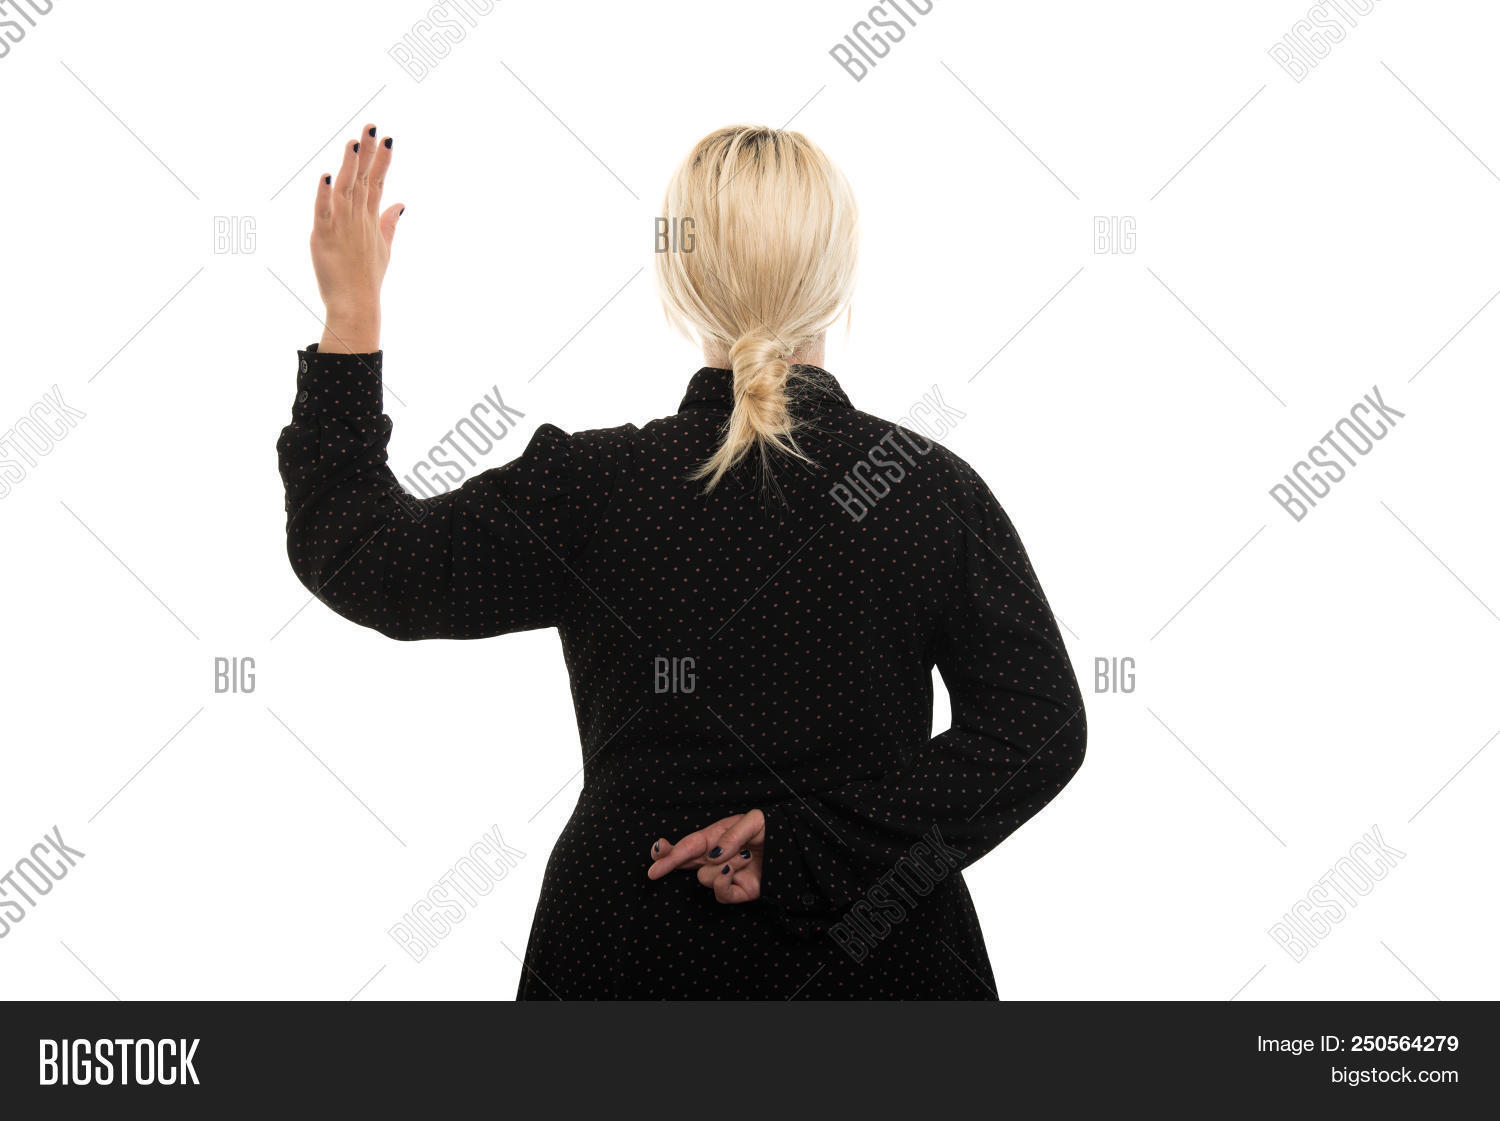 Portrait of young blonde female teacher wearing glasses showing oath gesture isolated on white background with copyspace advertising area